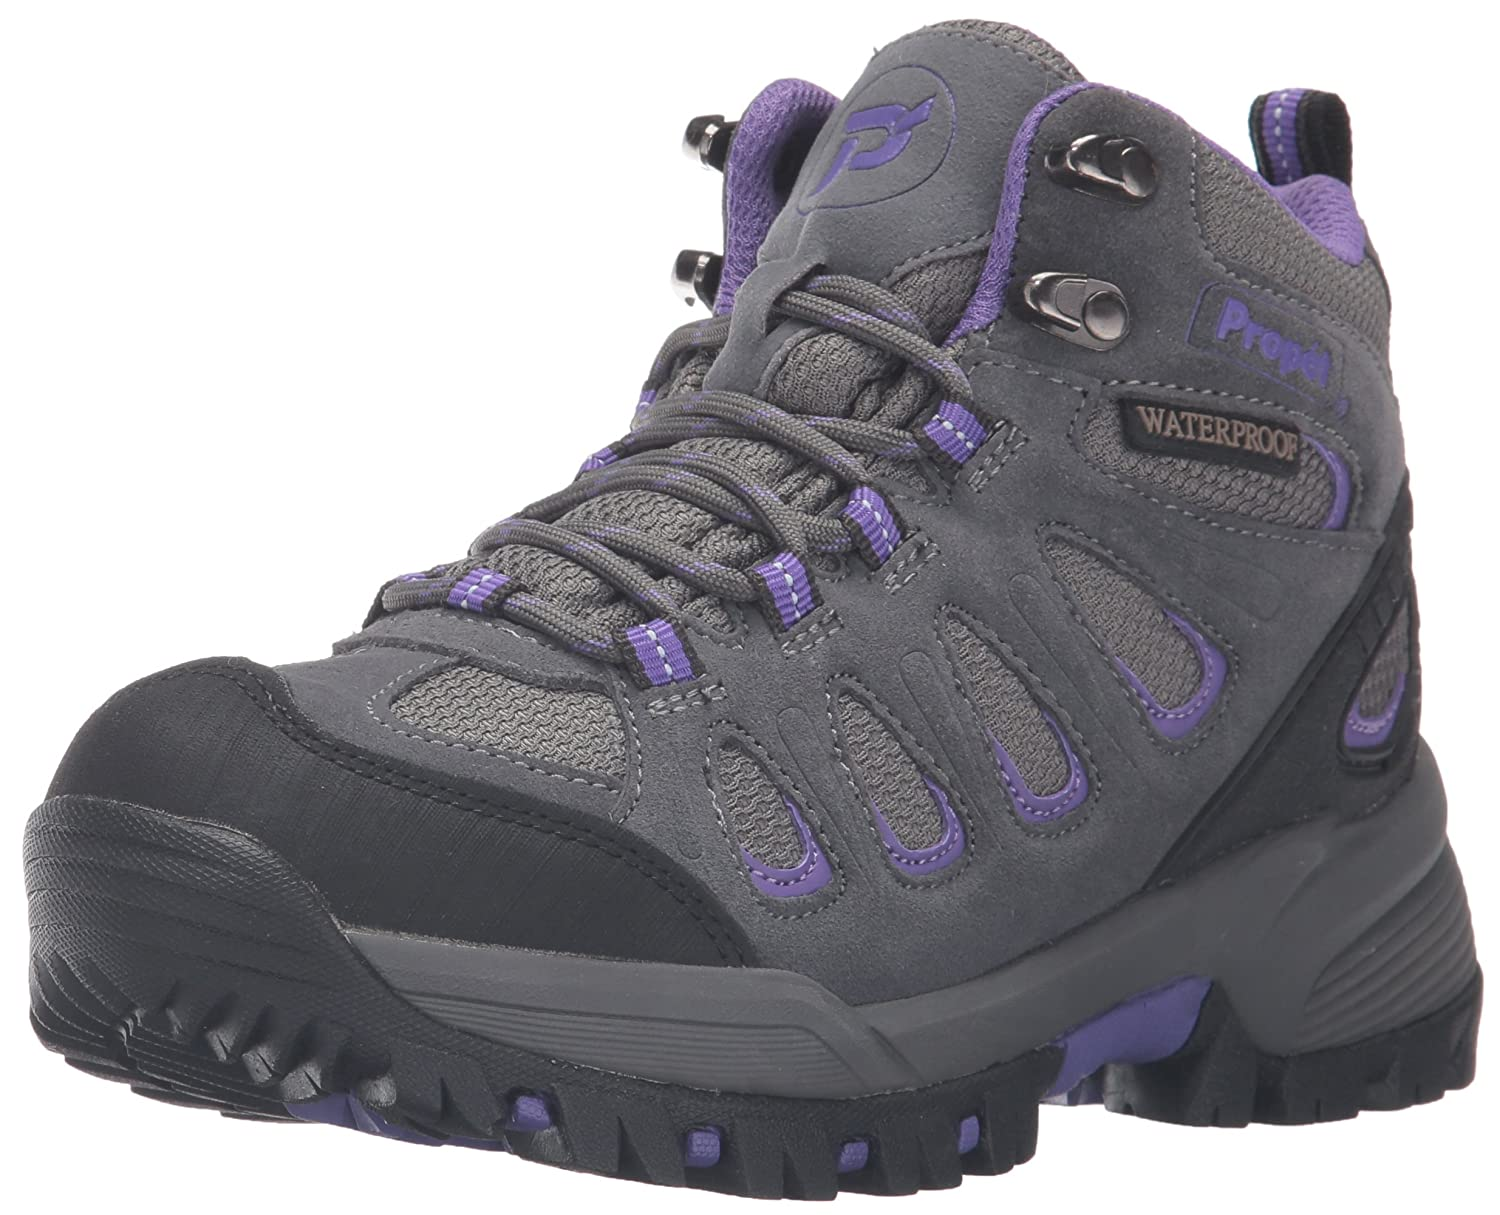 Propet Women's Ridgewalker Boot B01CYSRVUM 6.5 B(M) US|Grey/Purple